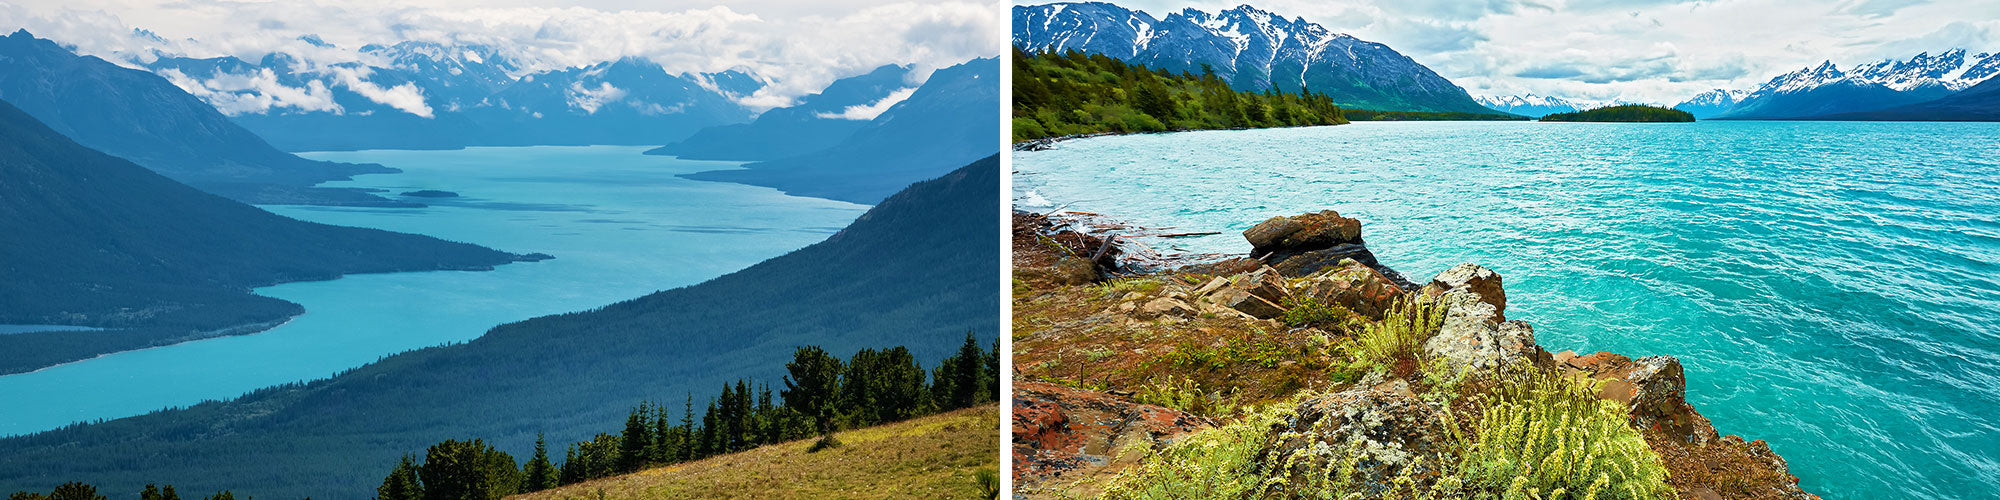 Fine Art Photography Prints of Chilko Lake - Satellite Images of Earth - Point Two Design